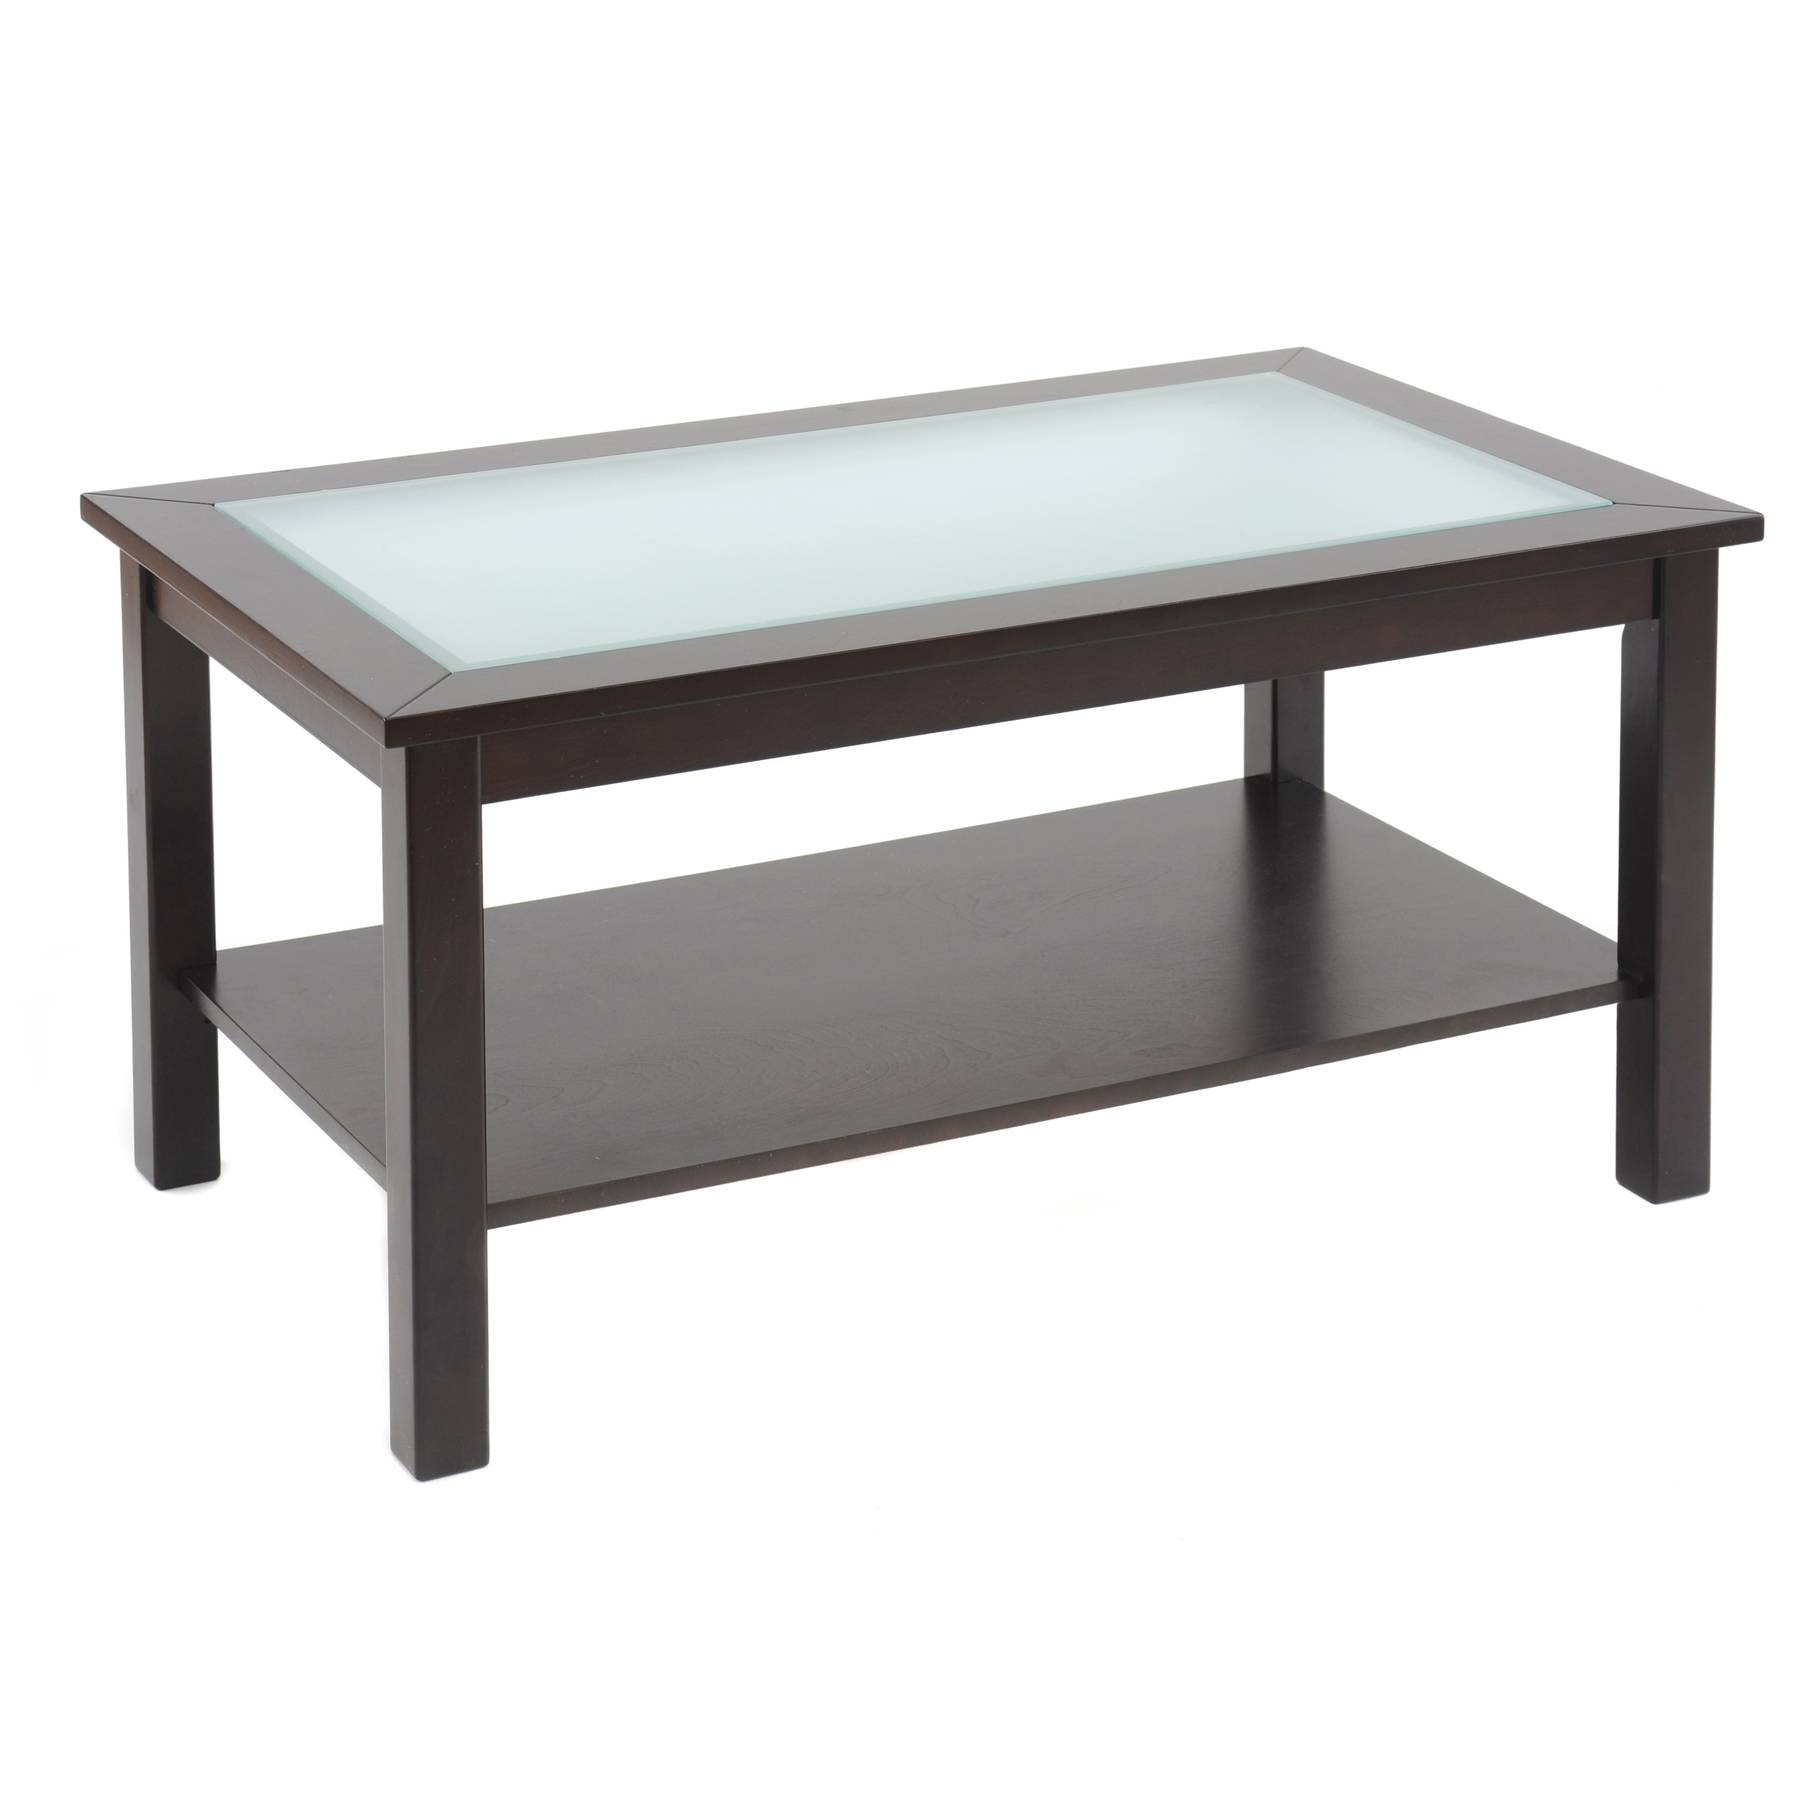 Coffee Table: Latest Coffee Table Glass Top Ideas Coffee Tables pertaining to Vintage Glass Top Coffee Tables (Image 9 of 30)